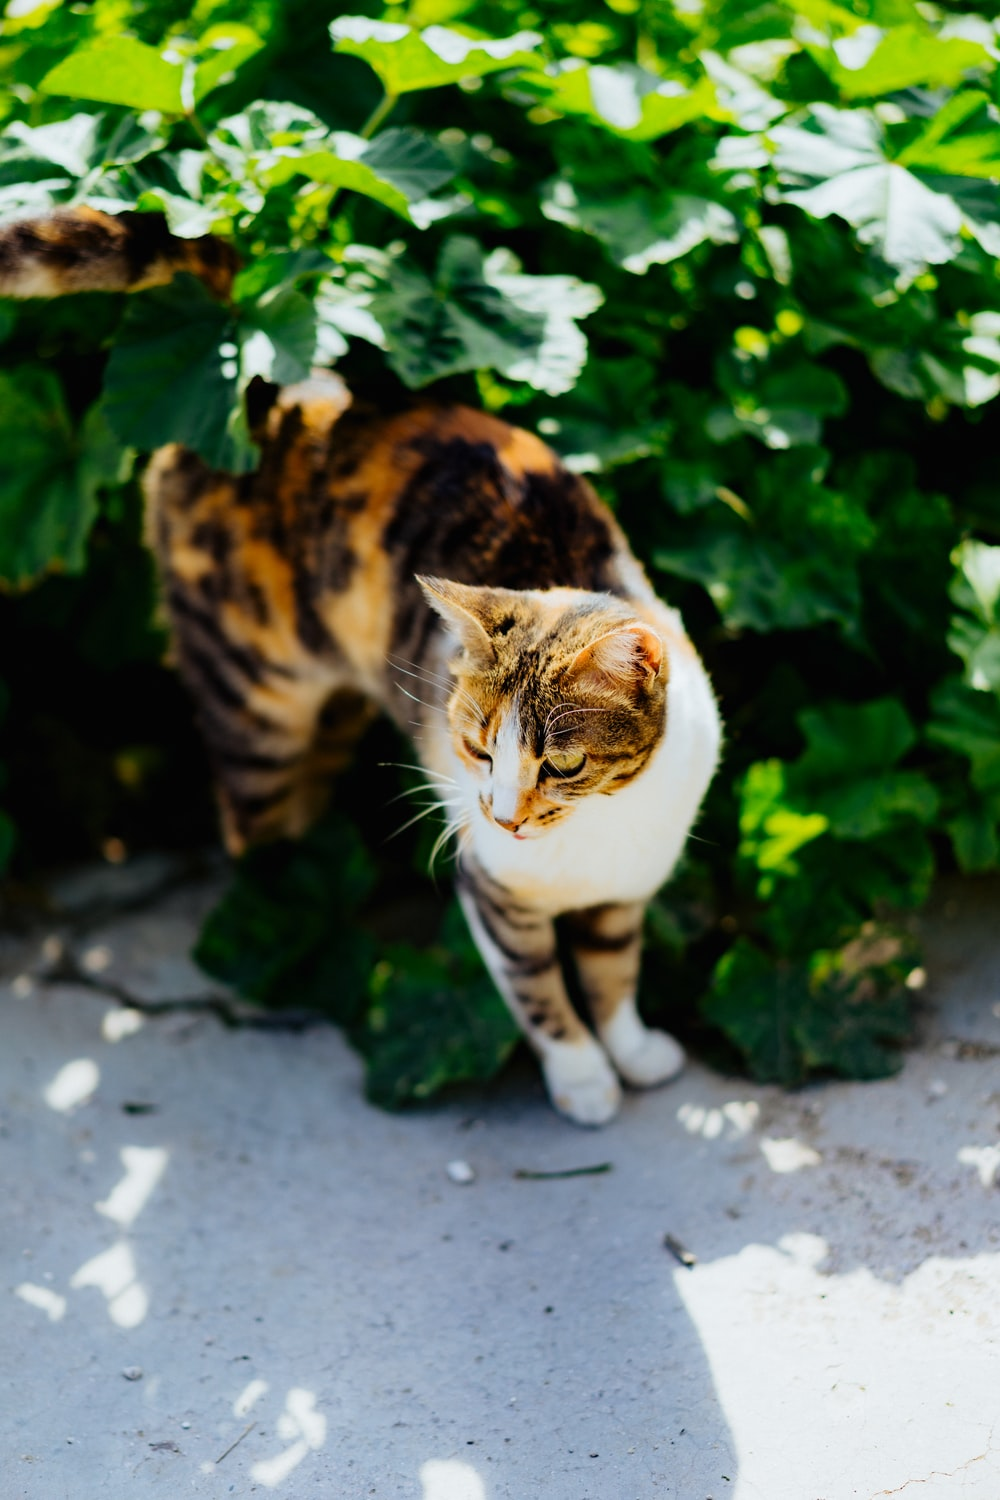 selective focus photography of brown and white cat beside green leaf plant